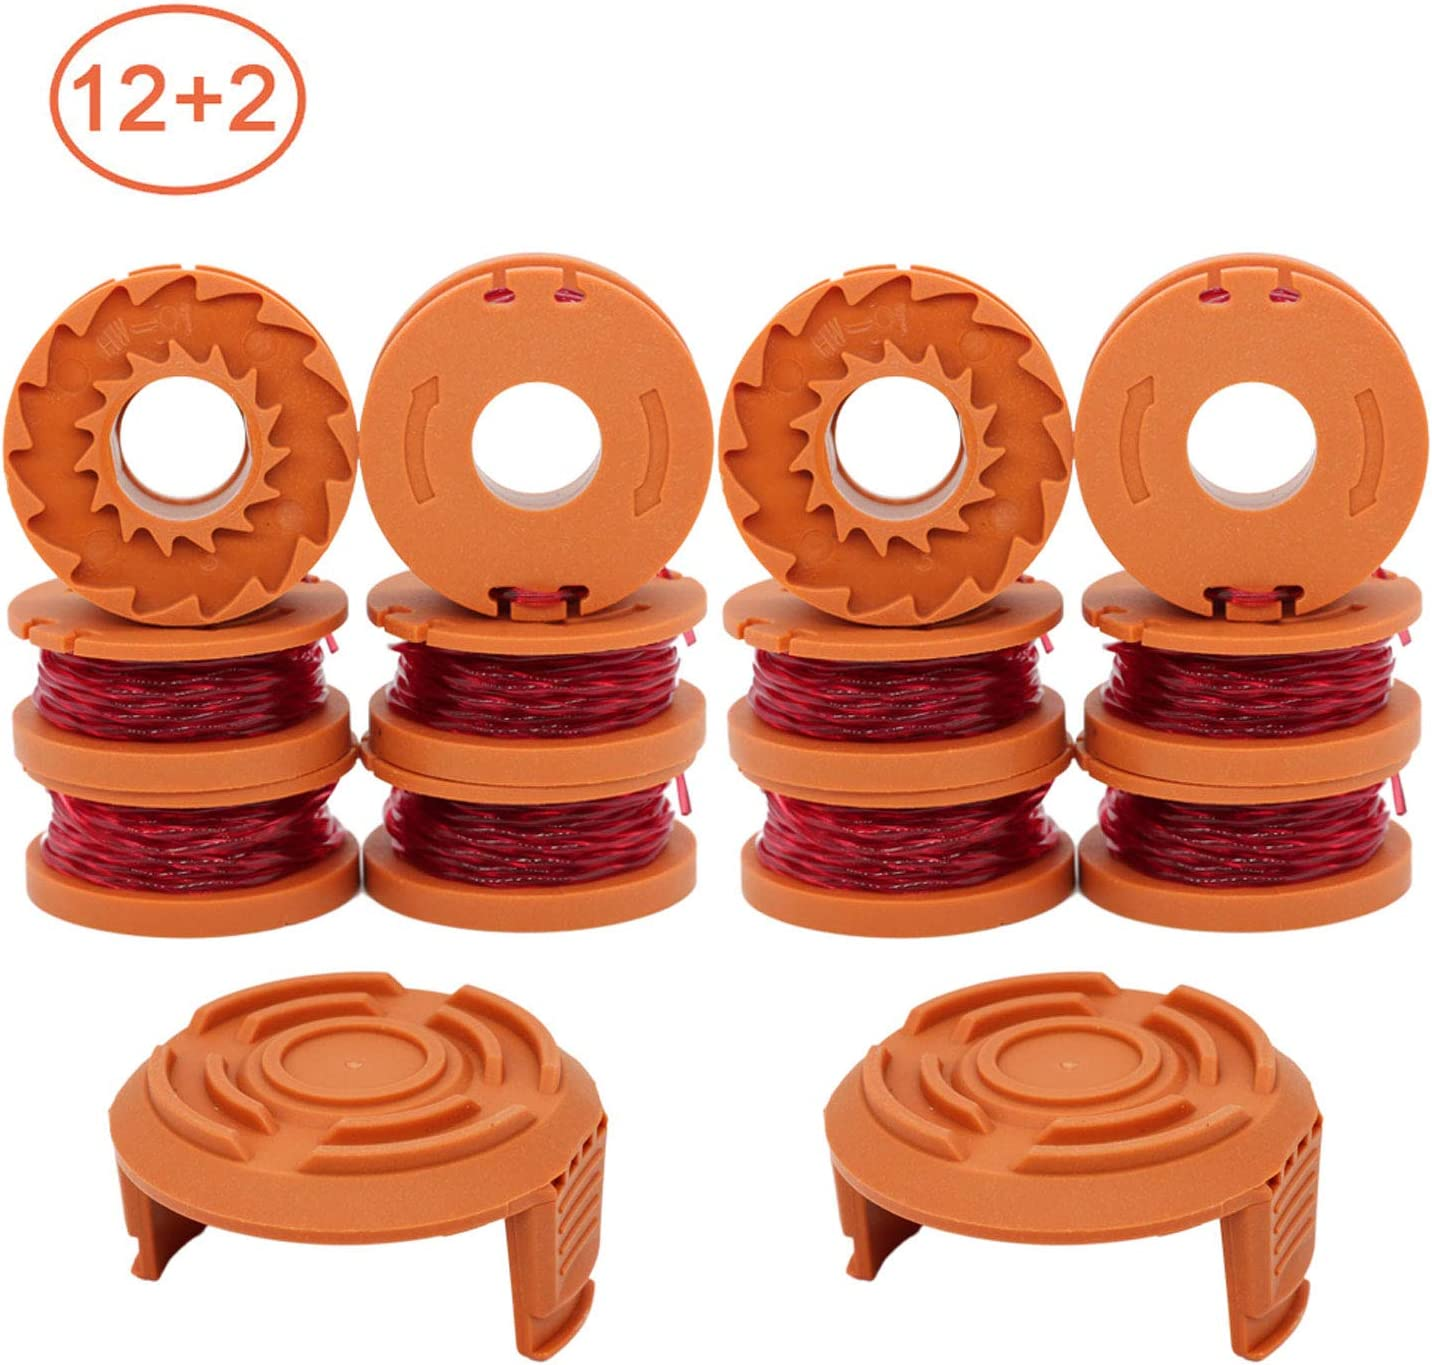 """RONGJU 12-Pack Replacement Trimmer Spool Line for Worx WA0010 WG180 WG163 WG175 Electric Trimmer/Edger Weed Eater Line 10ft 0.065 """"+ 2 Pack Spool Cap Covers (12 Spools, 2 Caps)"""